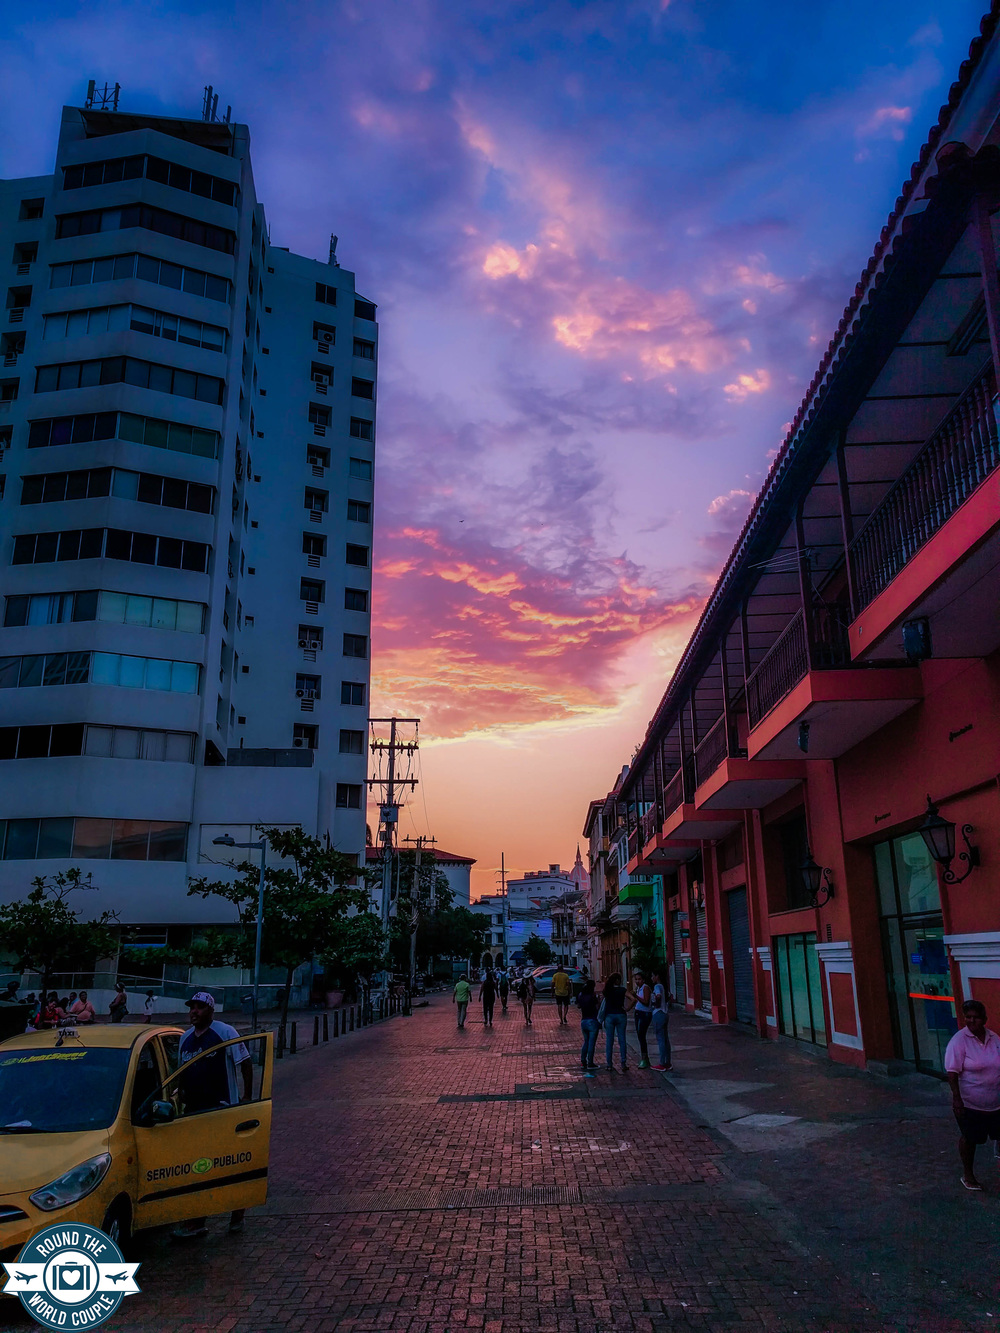 Sunset in Medellin, Colombia